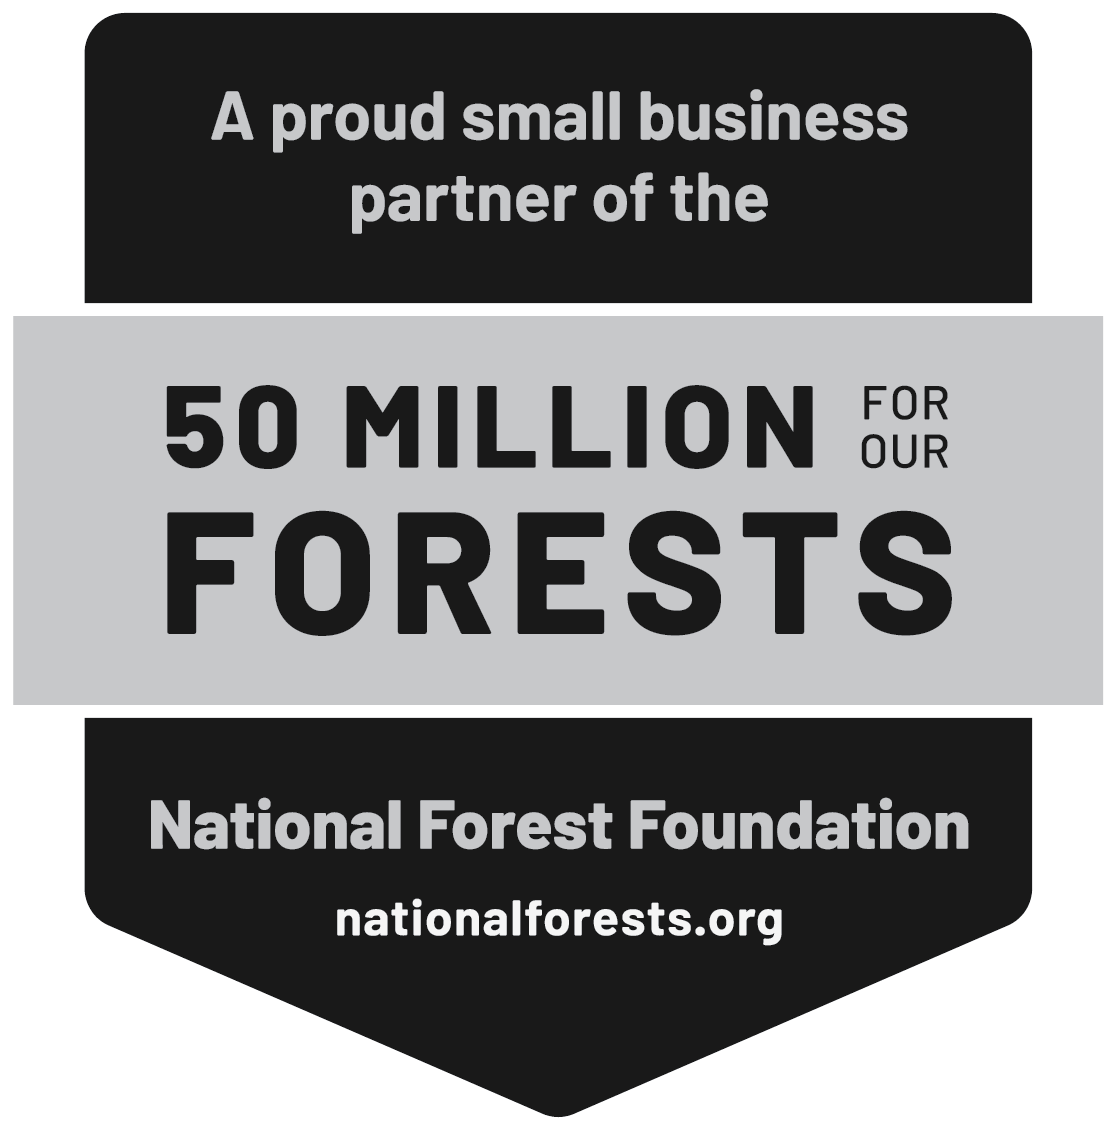 National Forest Foundation Small Business Partner